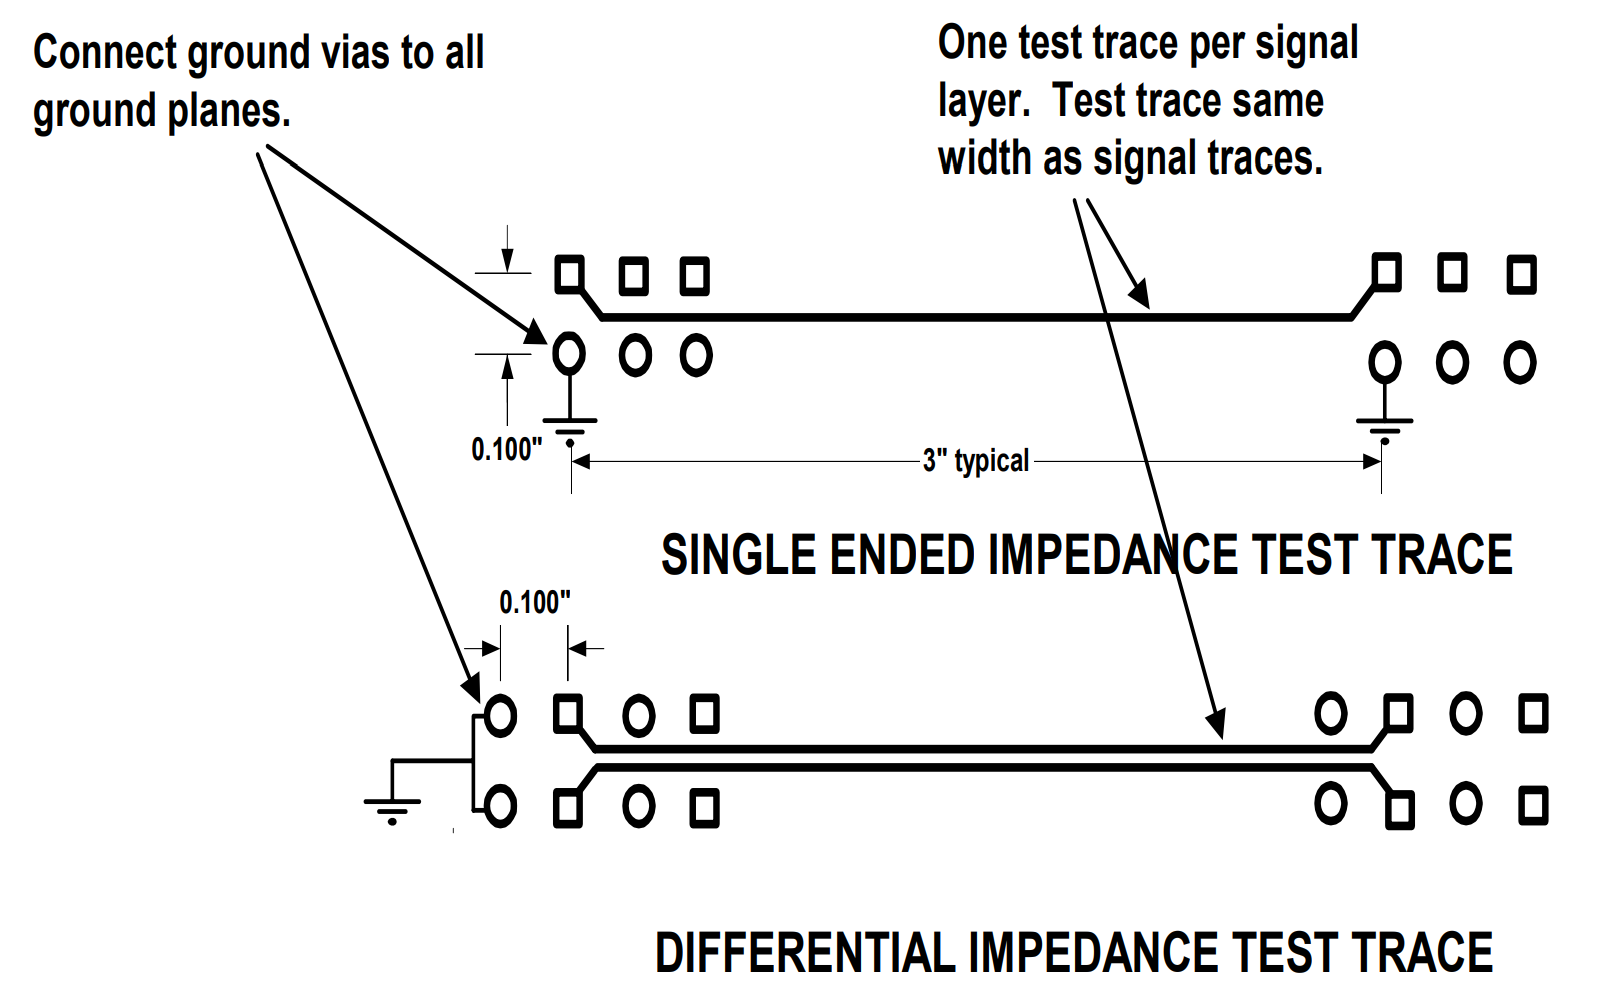 Sample Impedance Test Traces